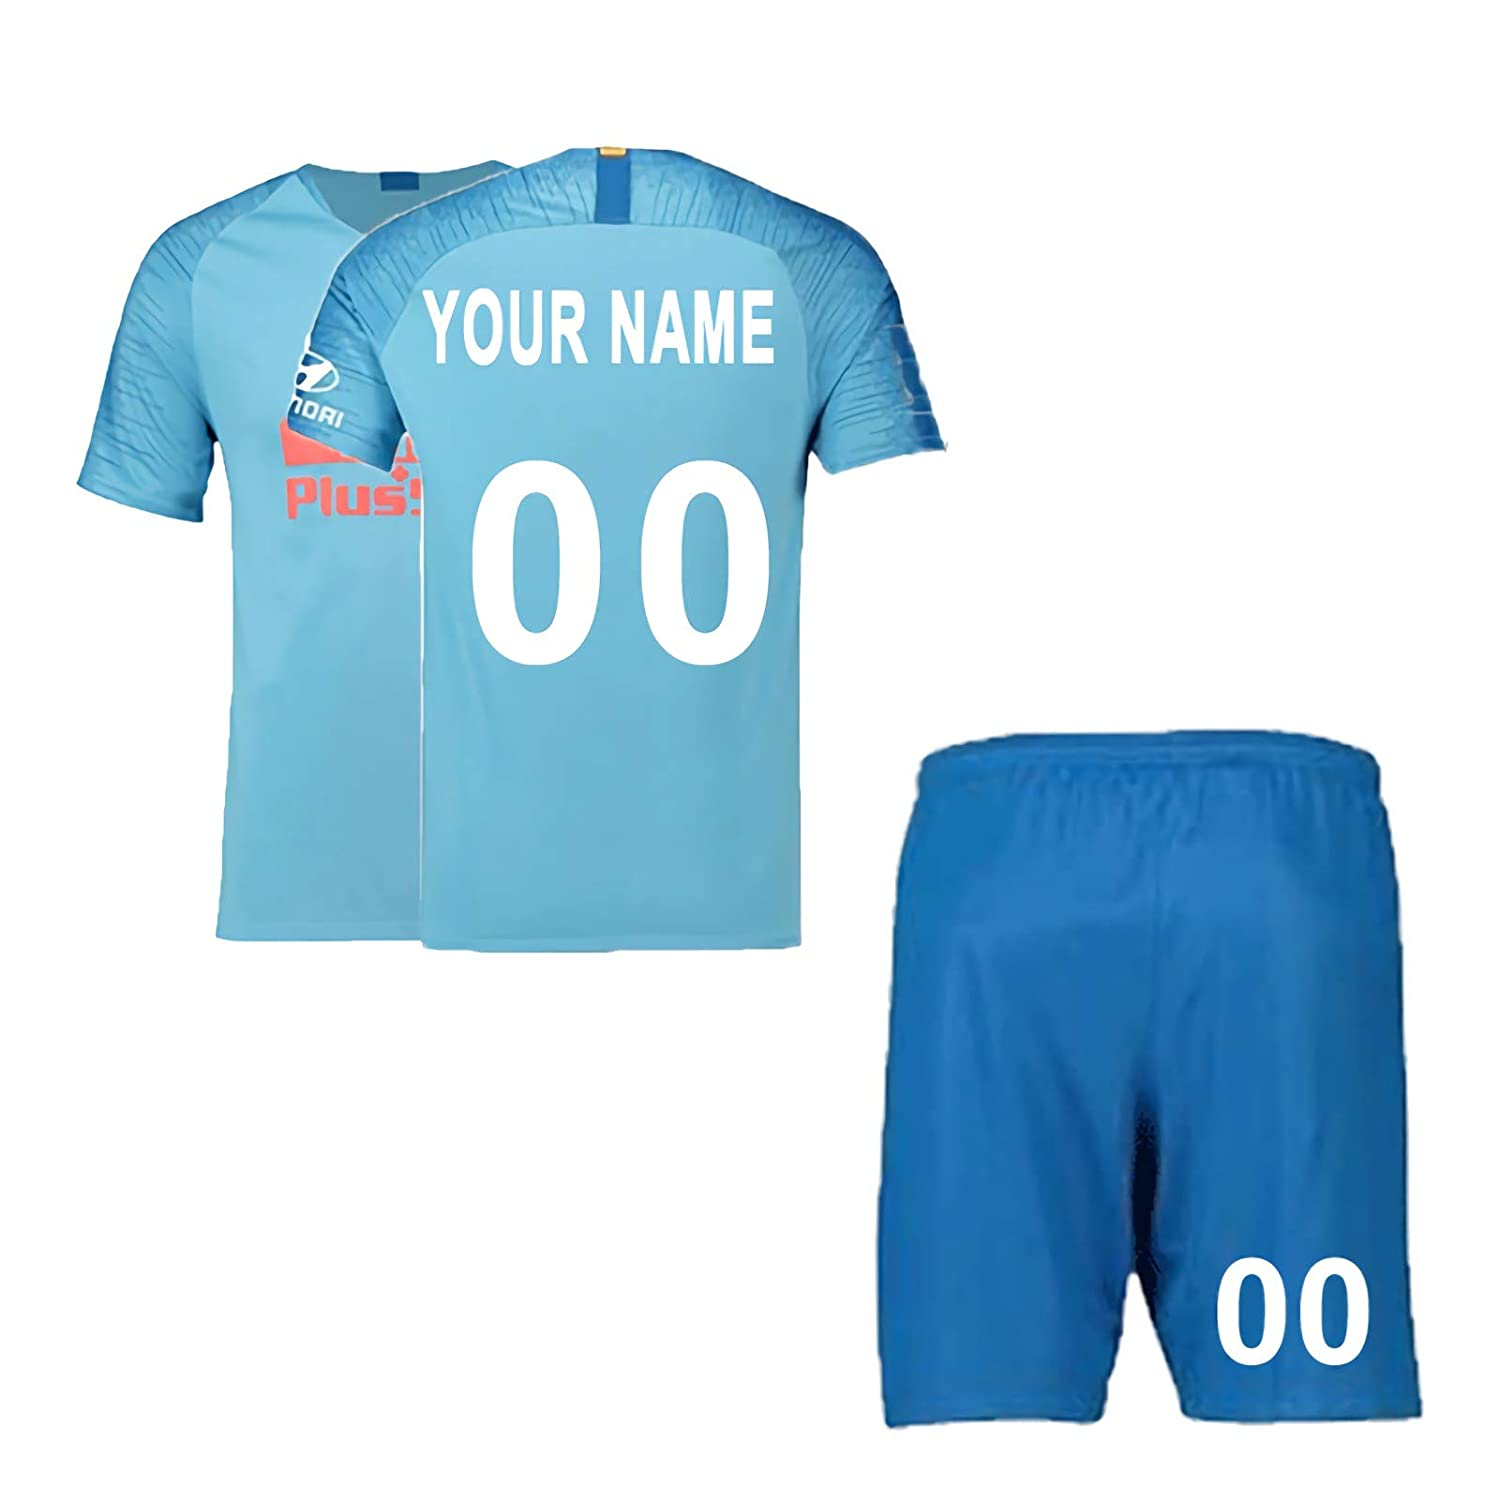 low cost dac80 2c221 Custom Soccer Jersey & Shorts Club Team (Home and Away) 2018-2019 New  Season Personalized Soccer Jersey Kits for Kids Adult Youth Boys Multiple  Clubs ...